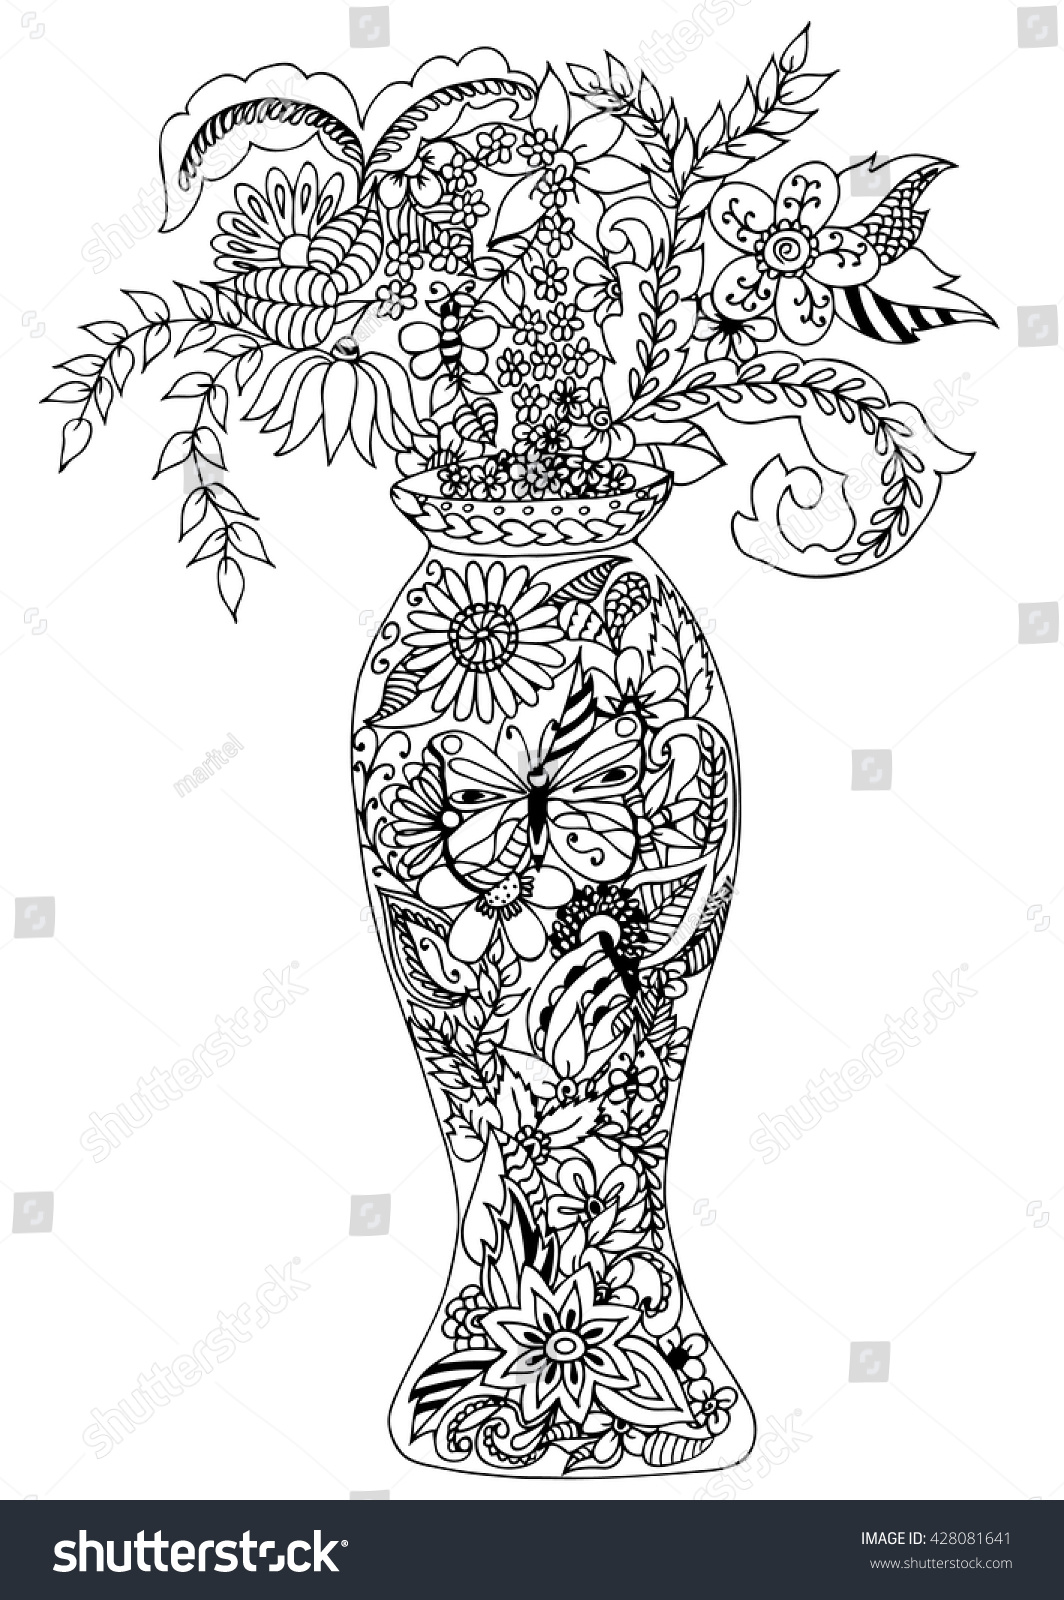 Vector Doodle Illustration Vase Of Flowers Zen Tangle Coloring Book Anti Stress For Adults